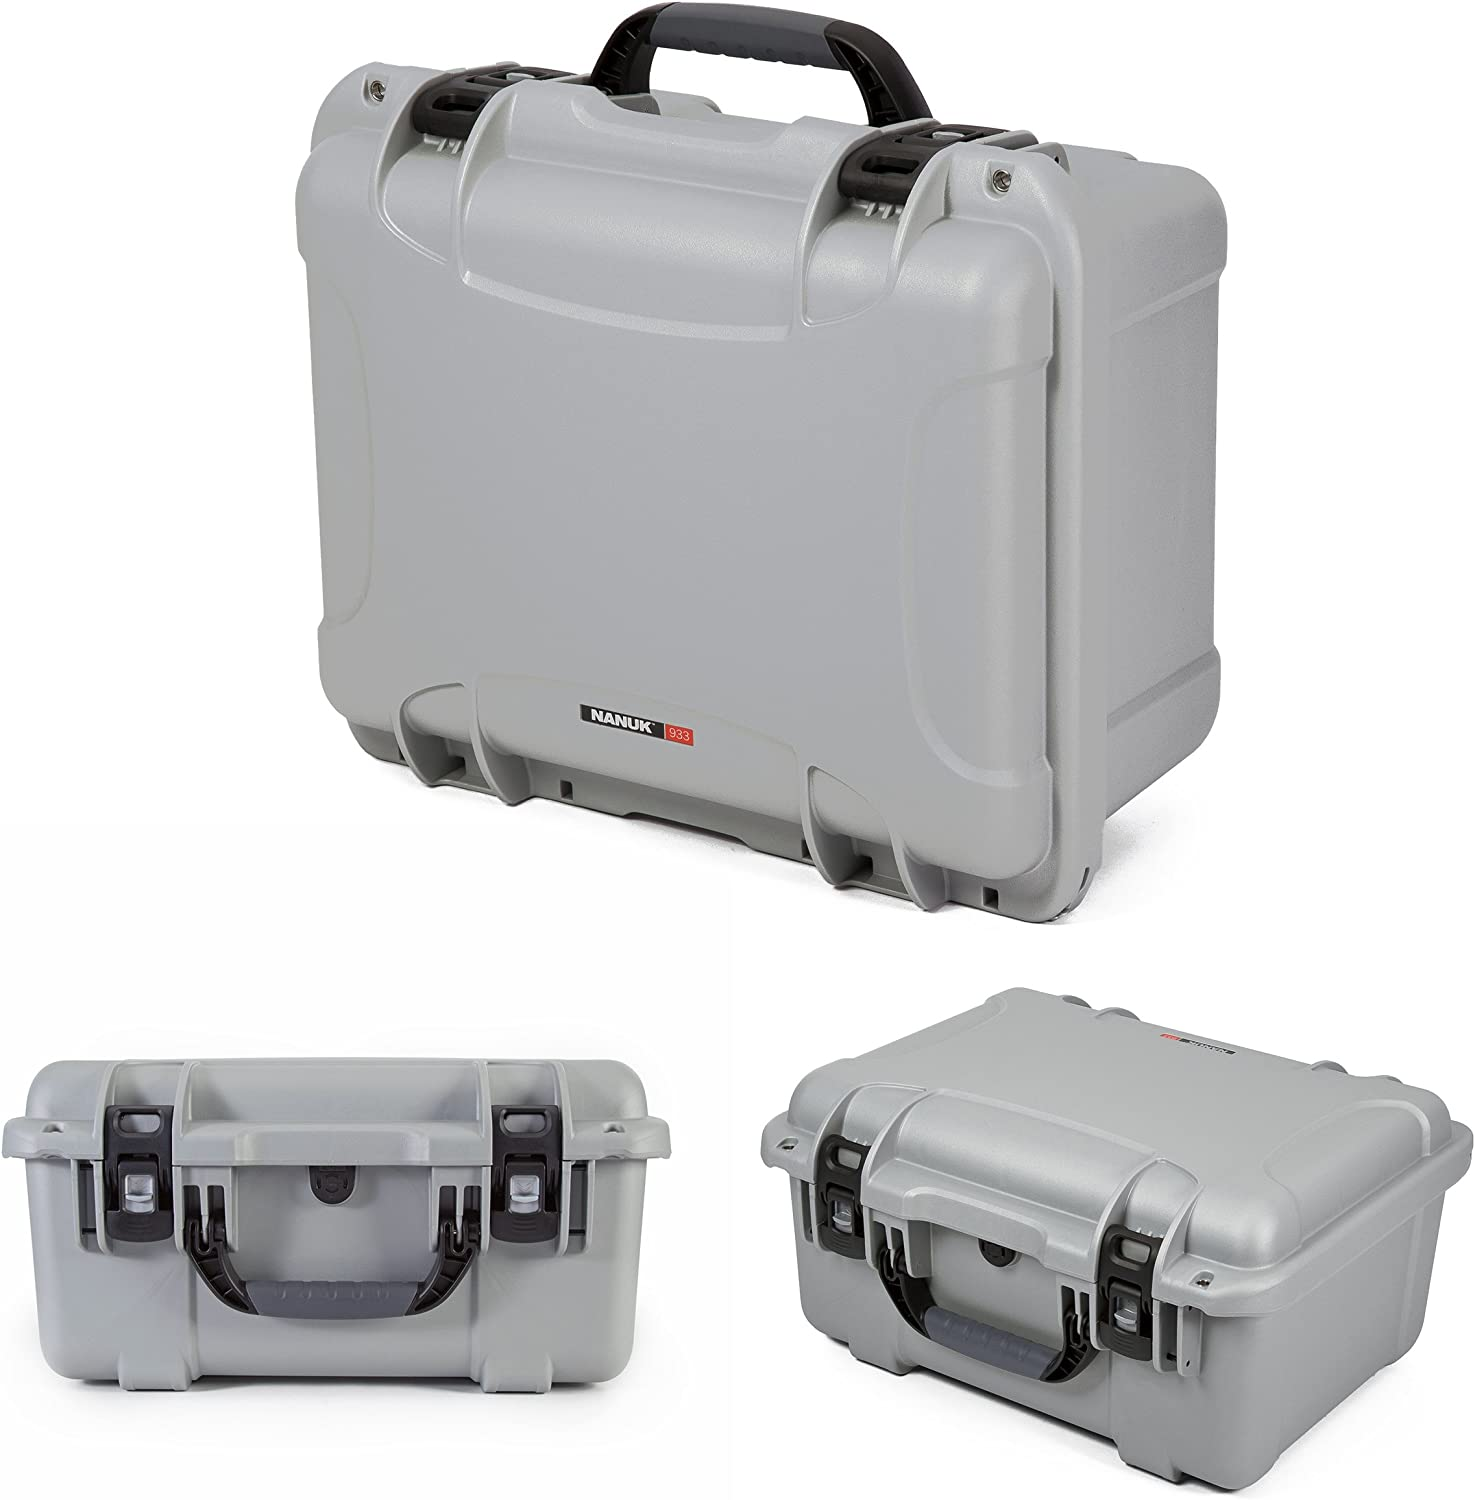 Nanuk 933 Waterproof Hard Case with Lid Organizer and Padded Divider Olive